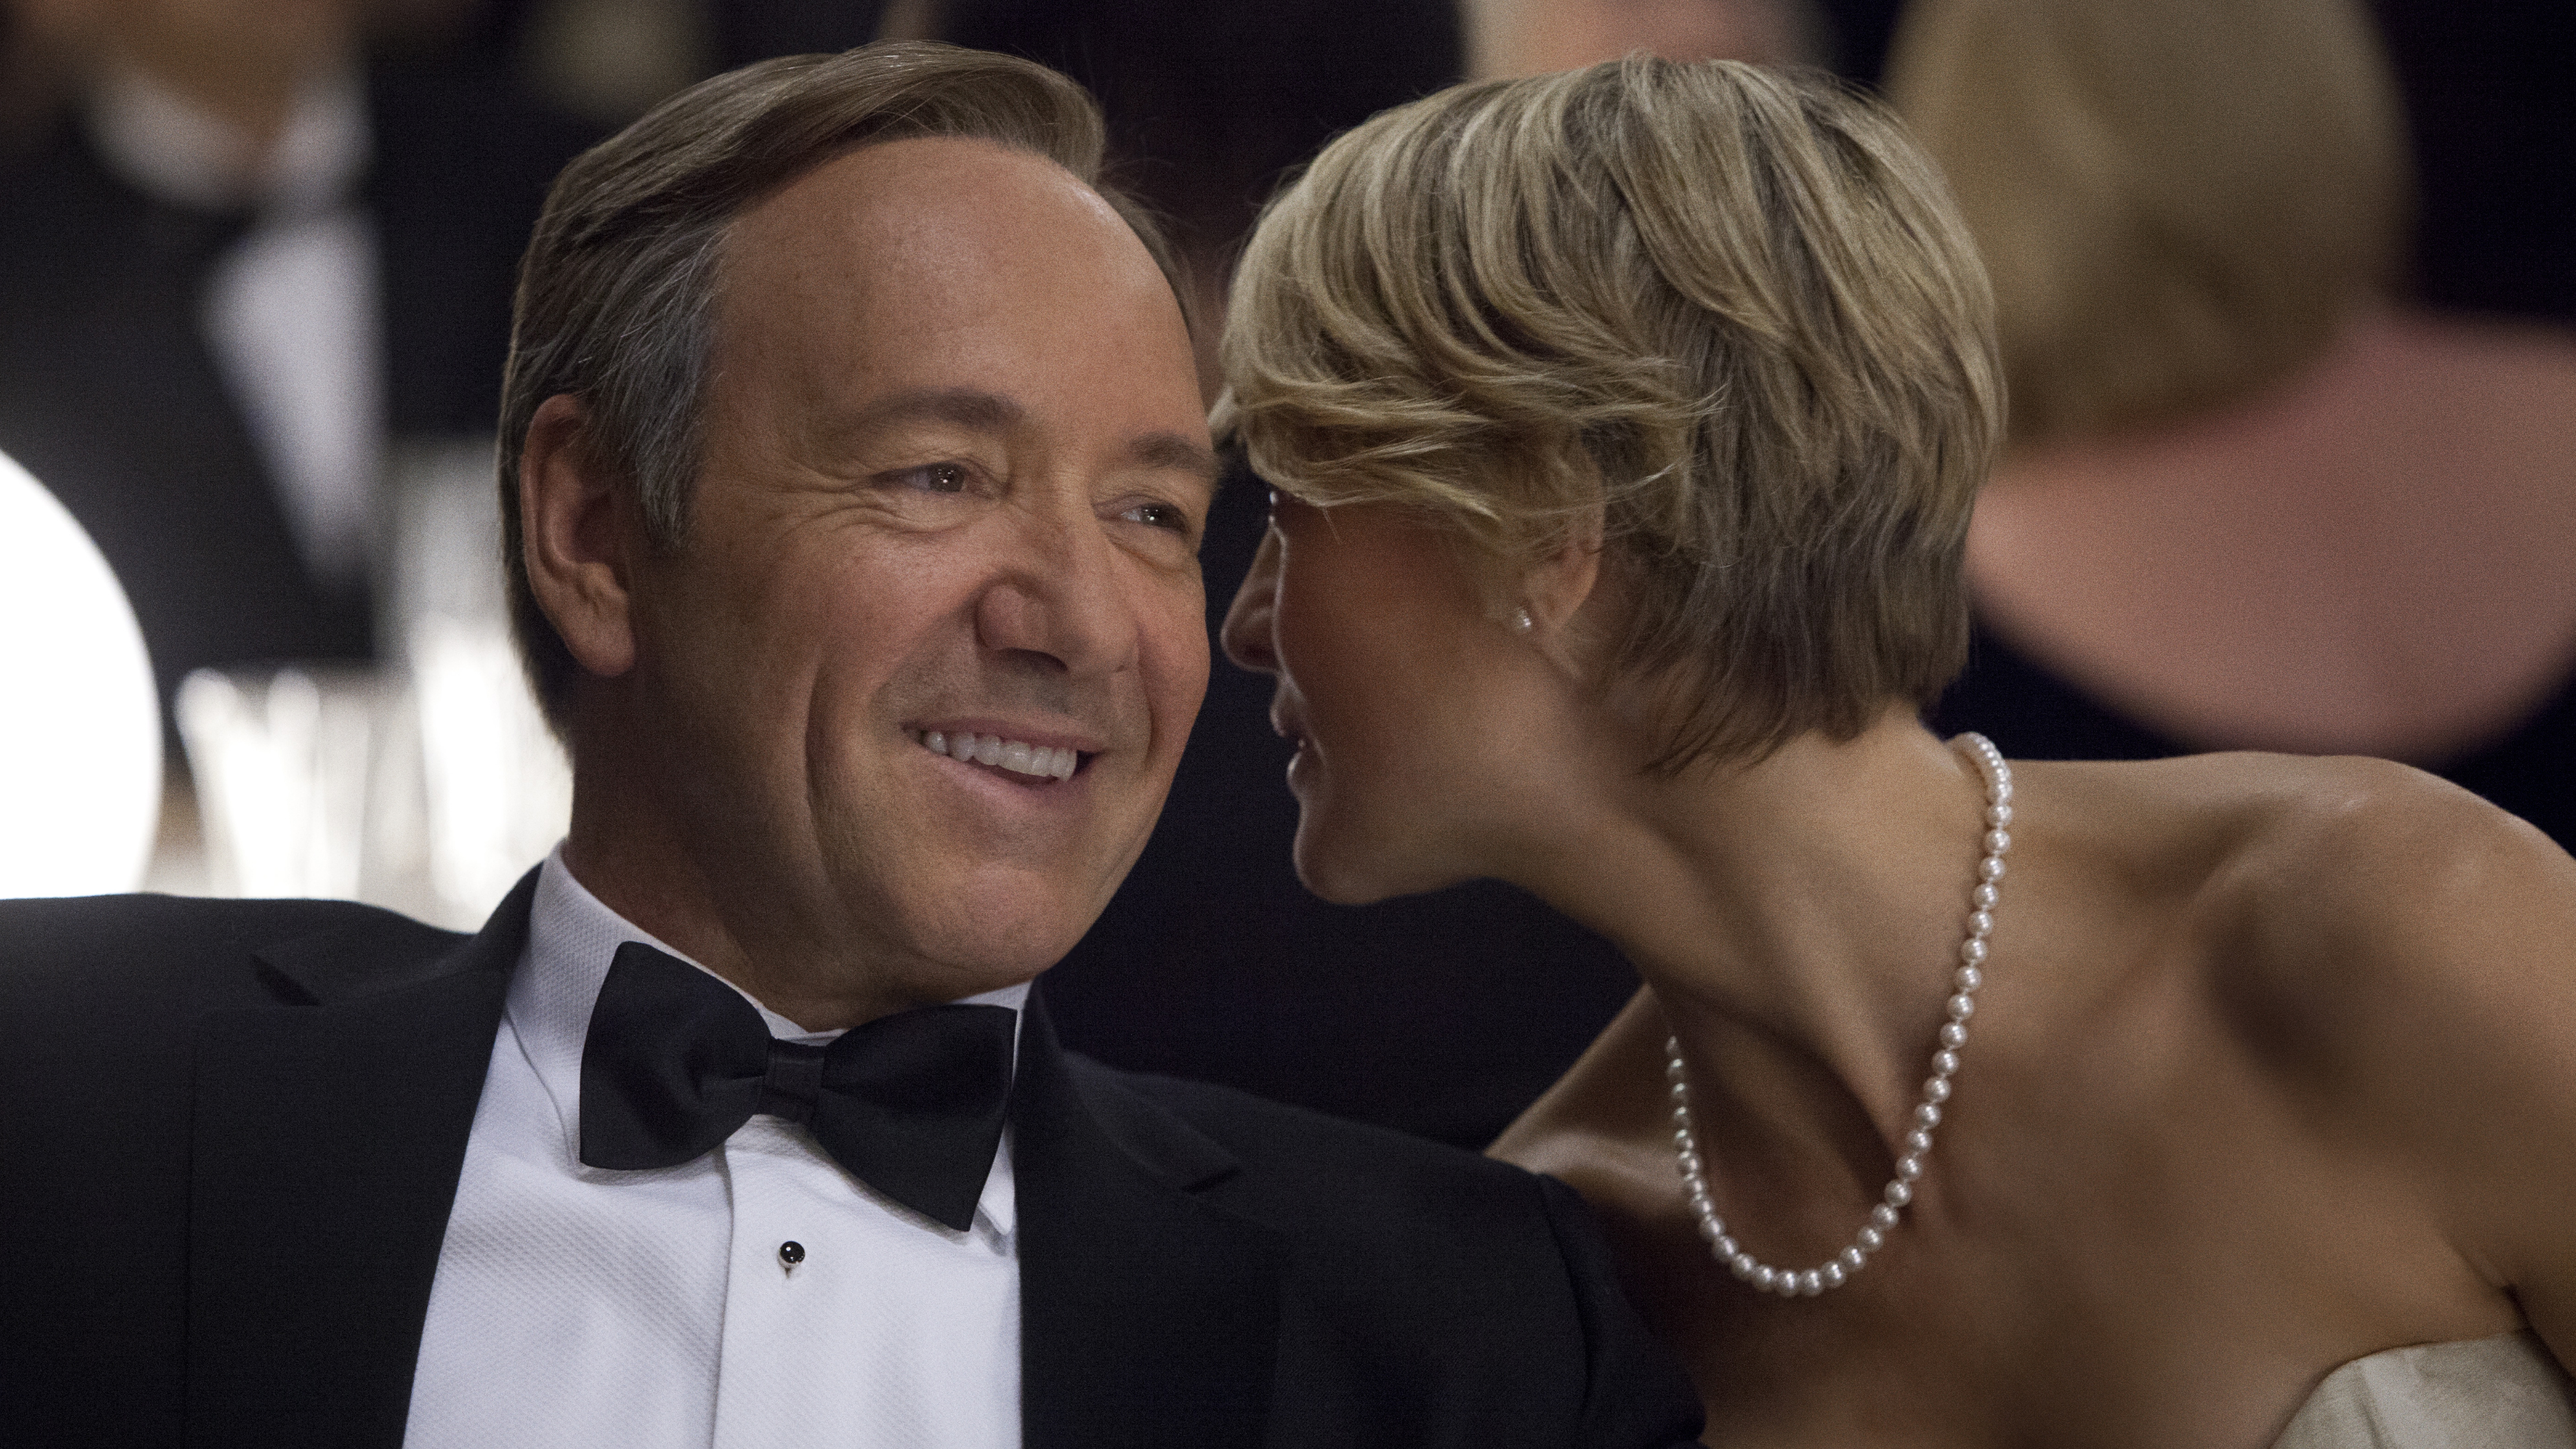 """Kevin Spacey as U.S. Congressman Frank Underwood, left, and Robin Wright as Claire Underwood in a scene from the Netflix original series, """"House of Cards."""""""